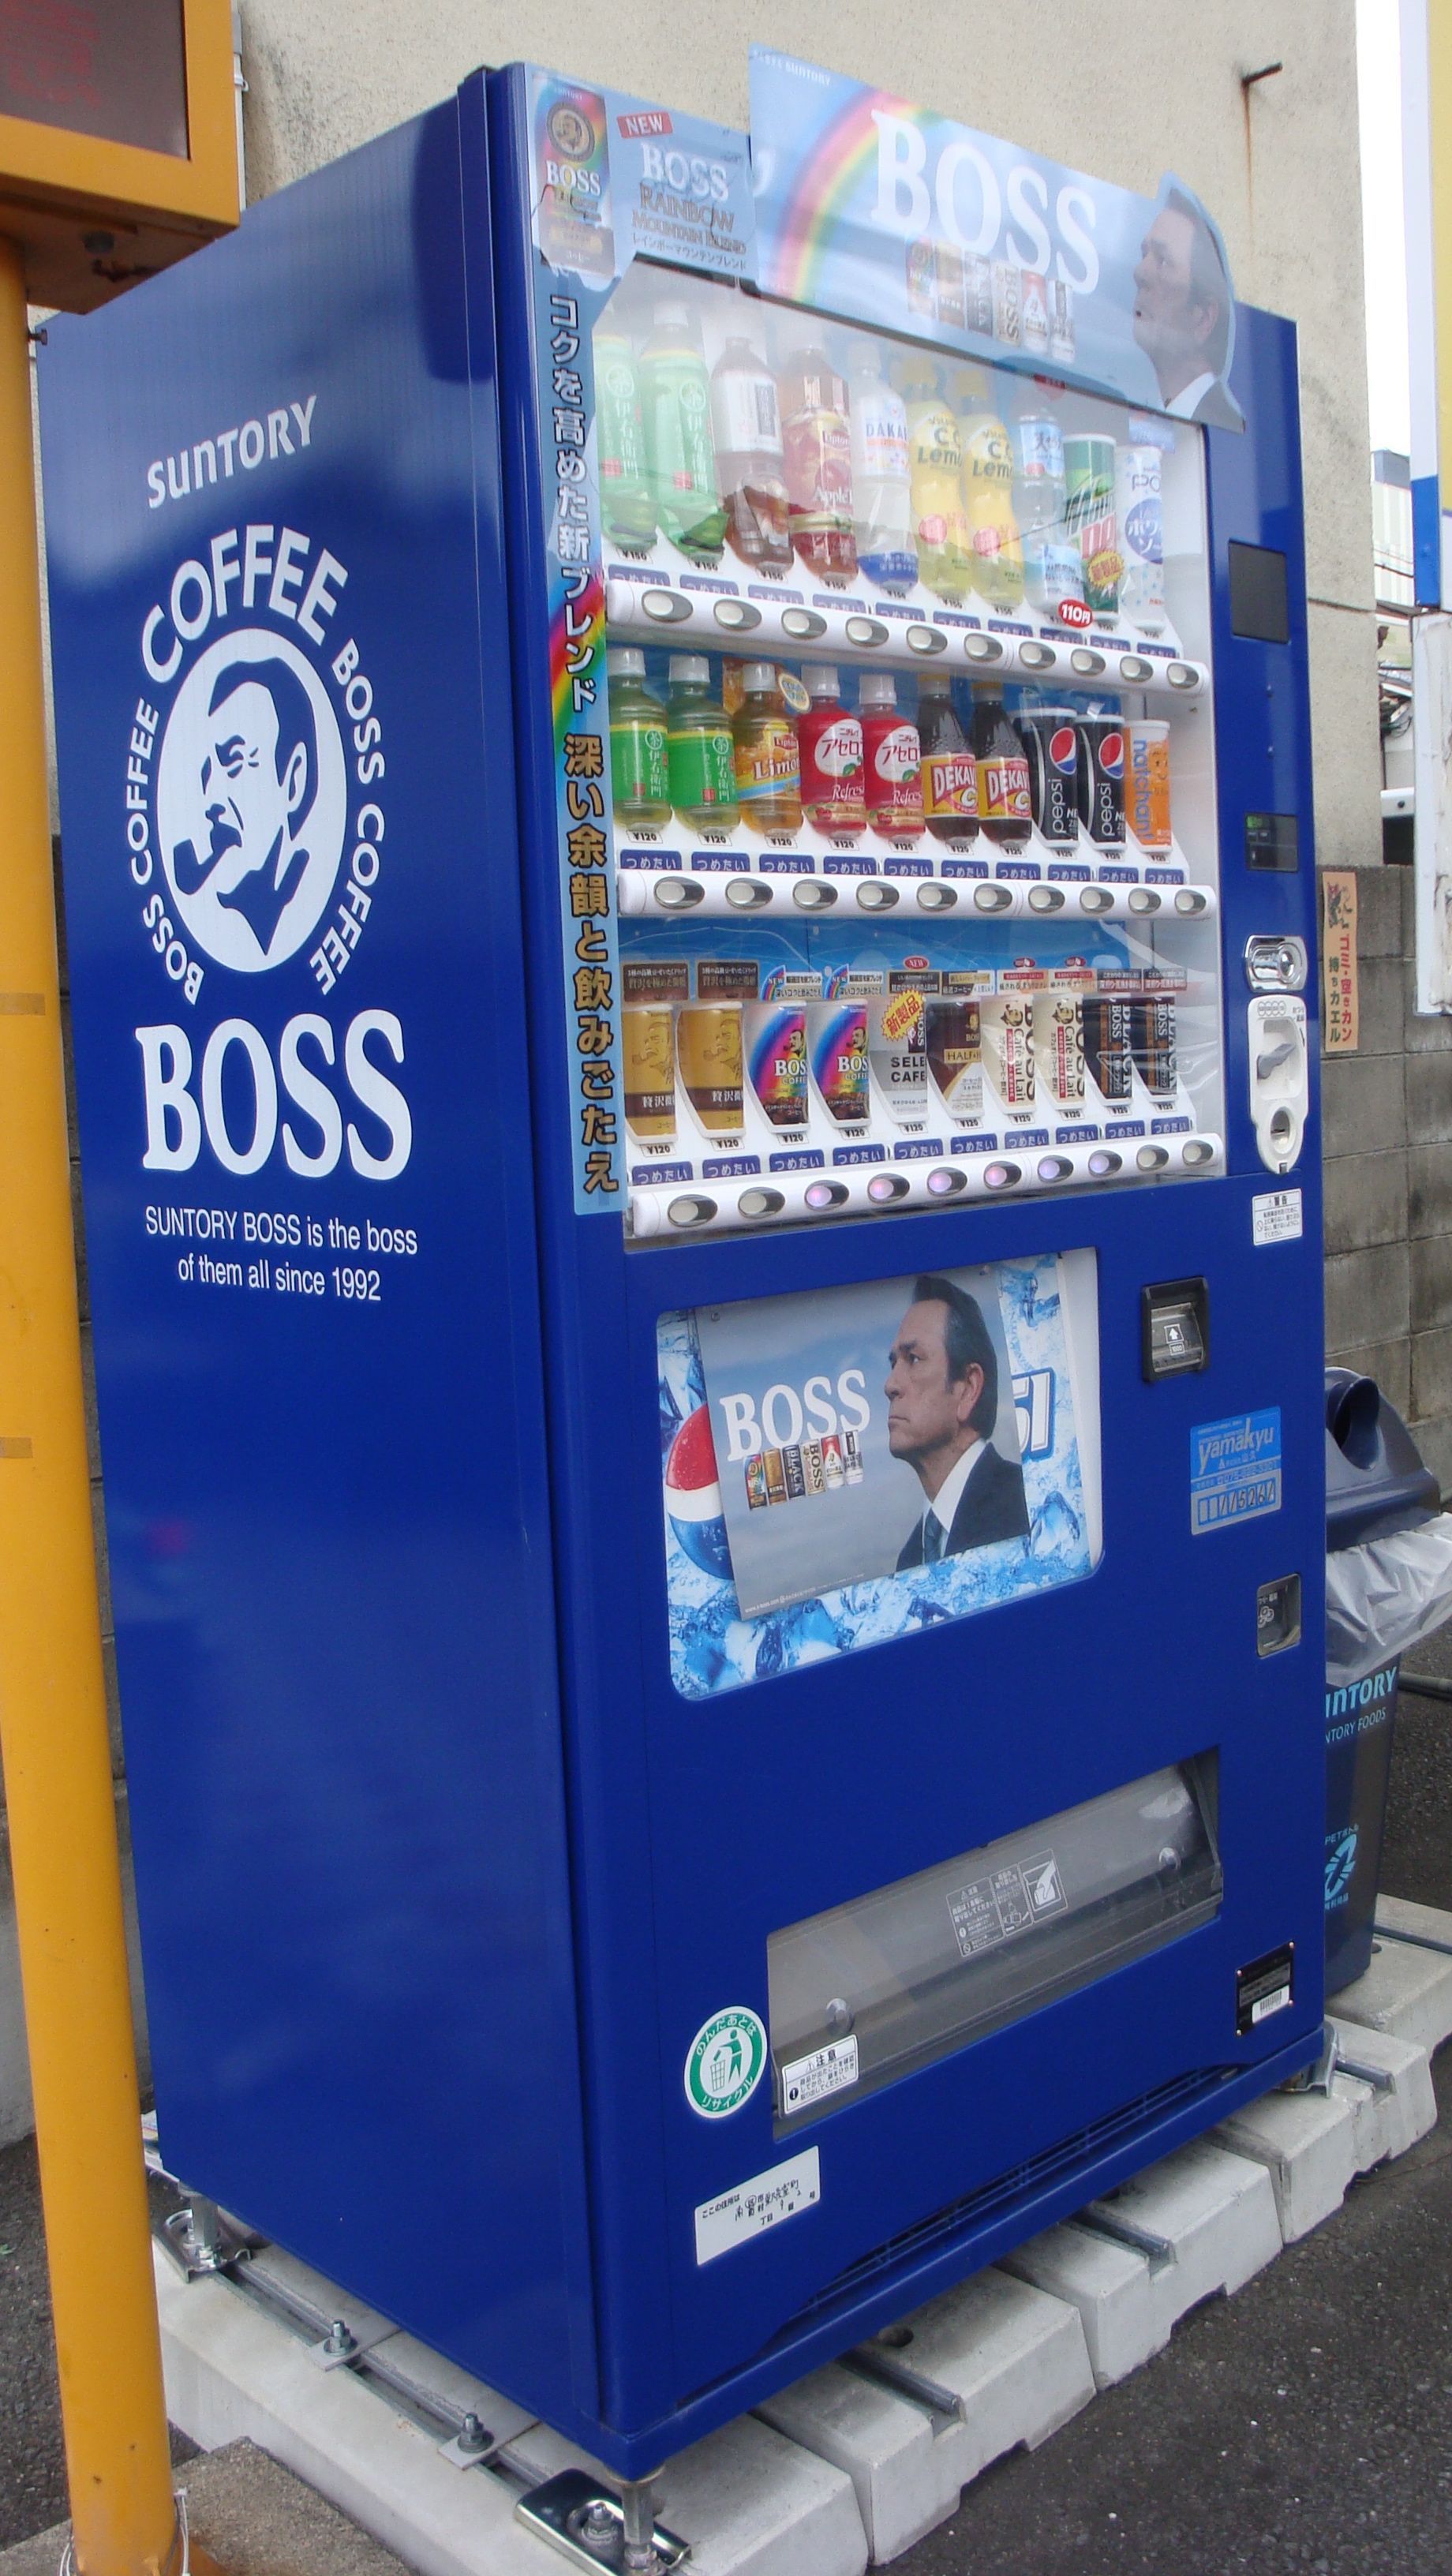 Japanese Vending Machines Coffee Boss With What Looks Like Tommy Lee Jones On The Front Vending Machines In Japan Vending Machine Website Template Design